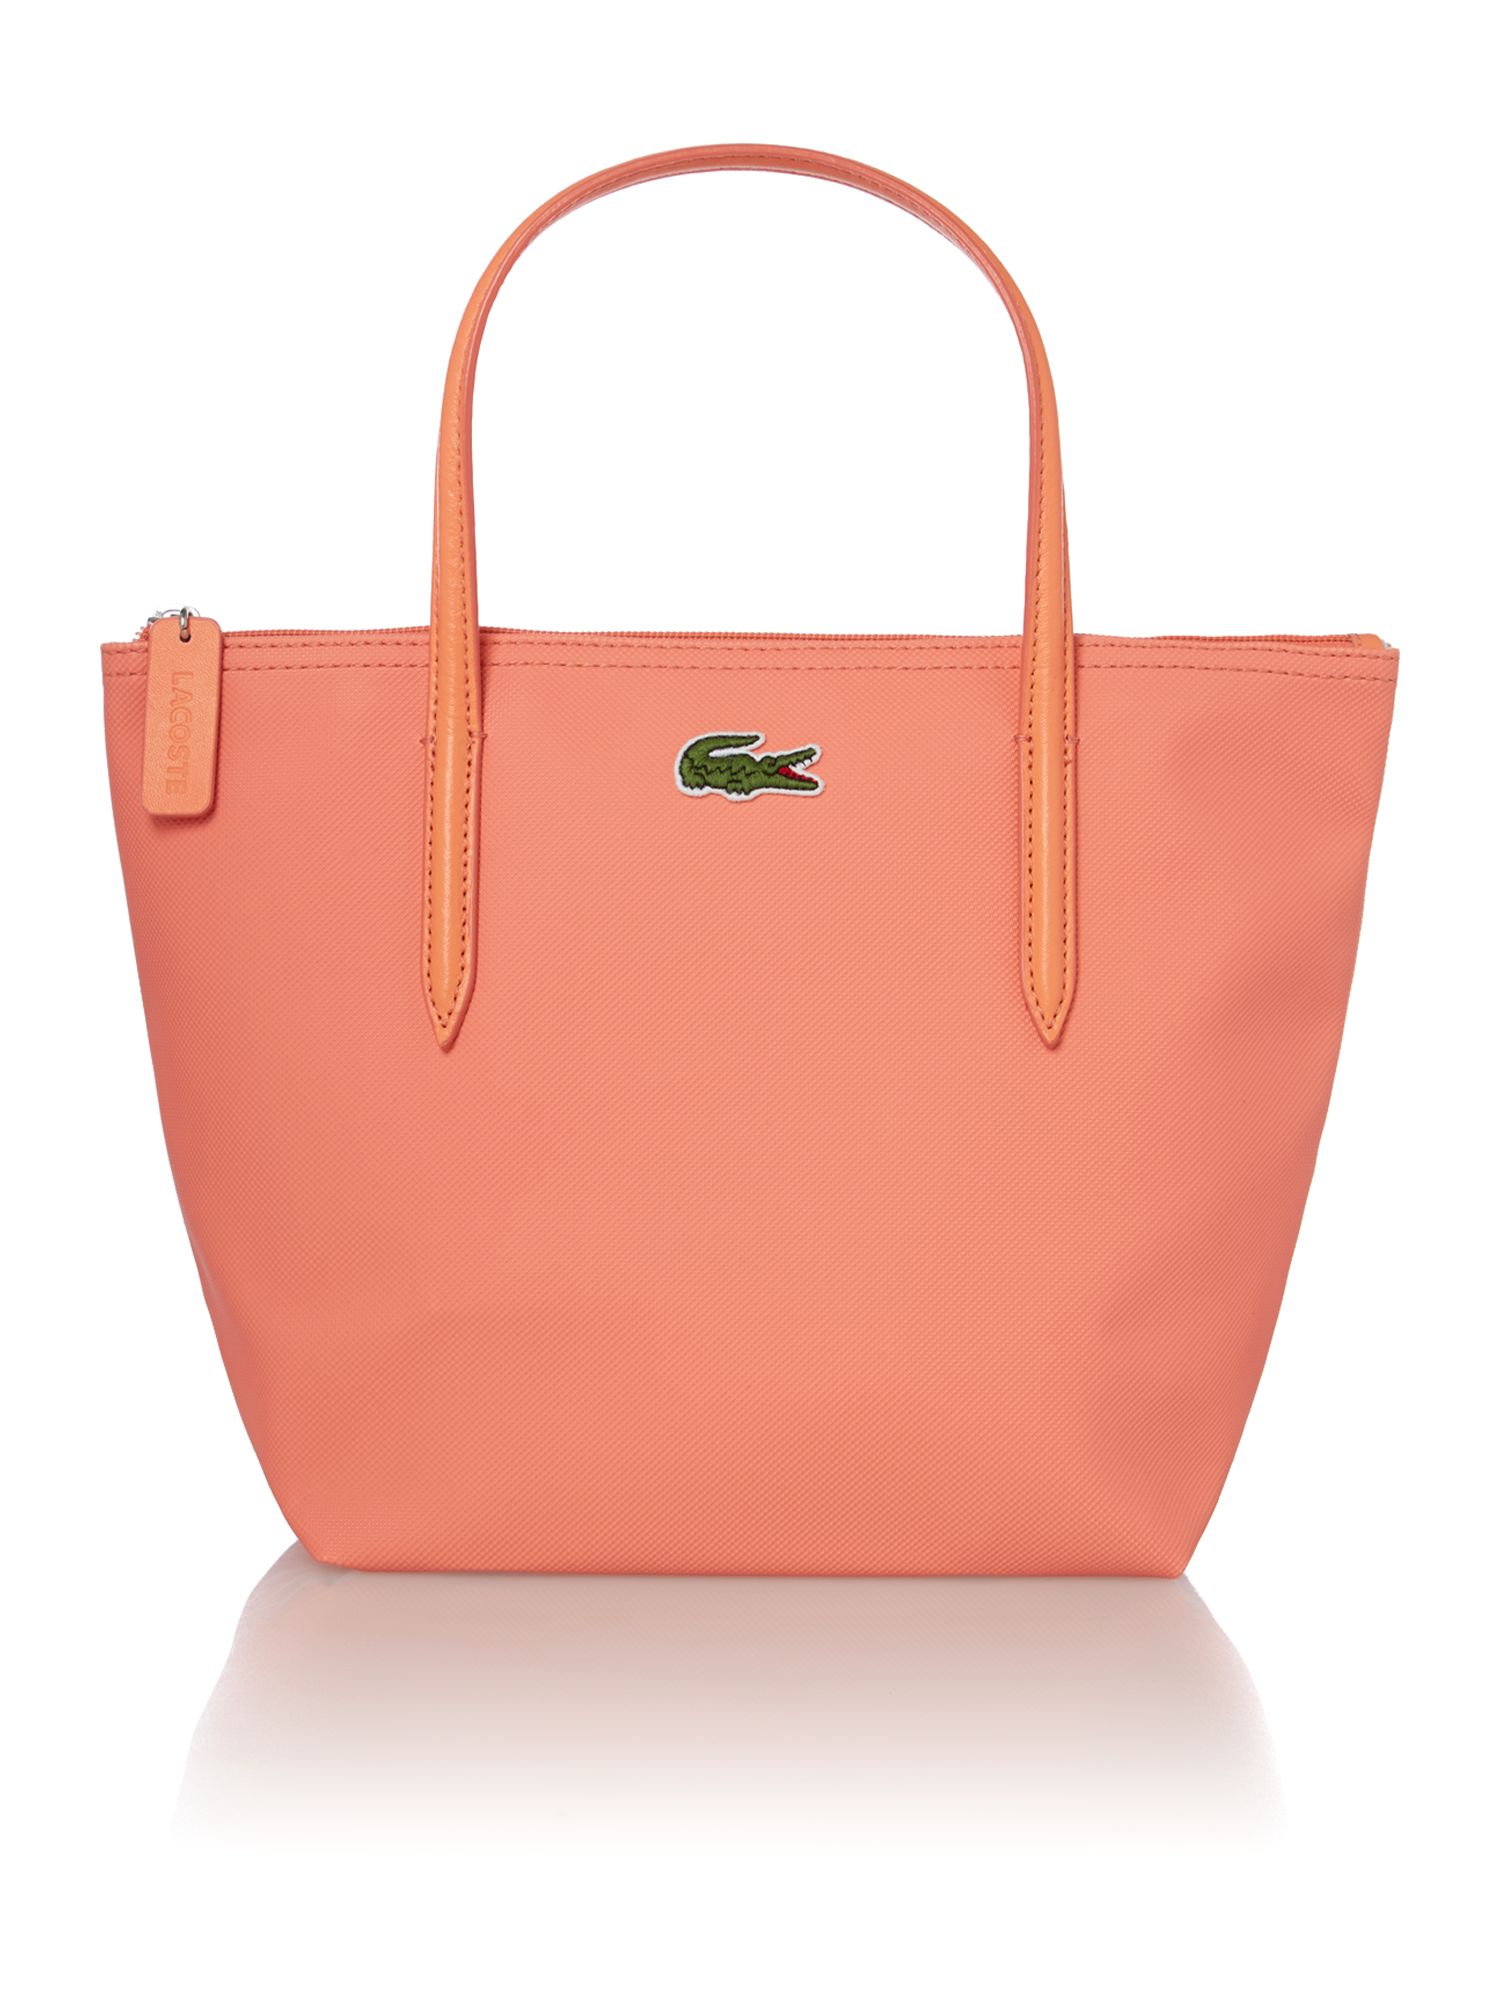 Coral small tote bag